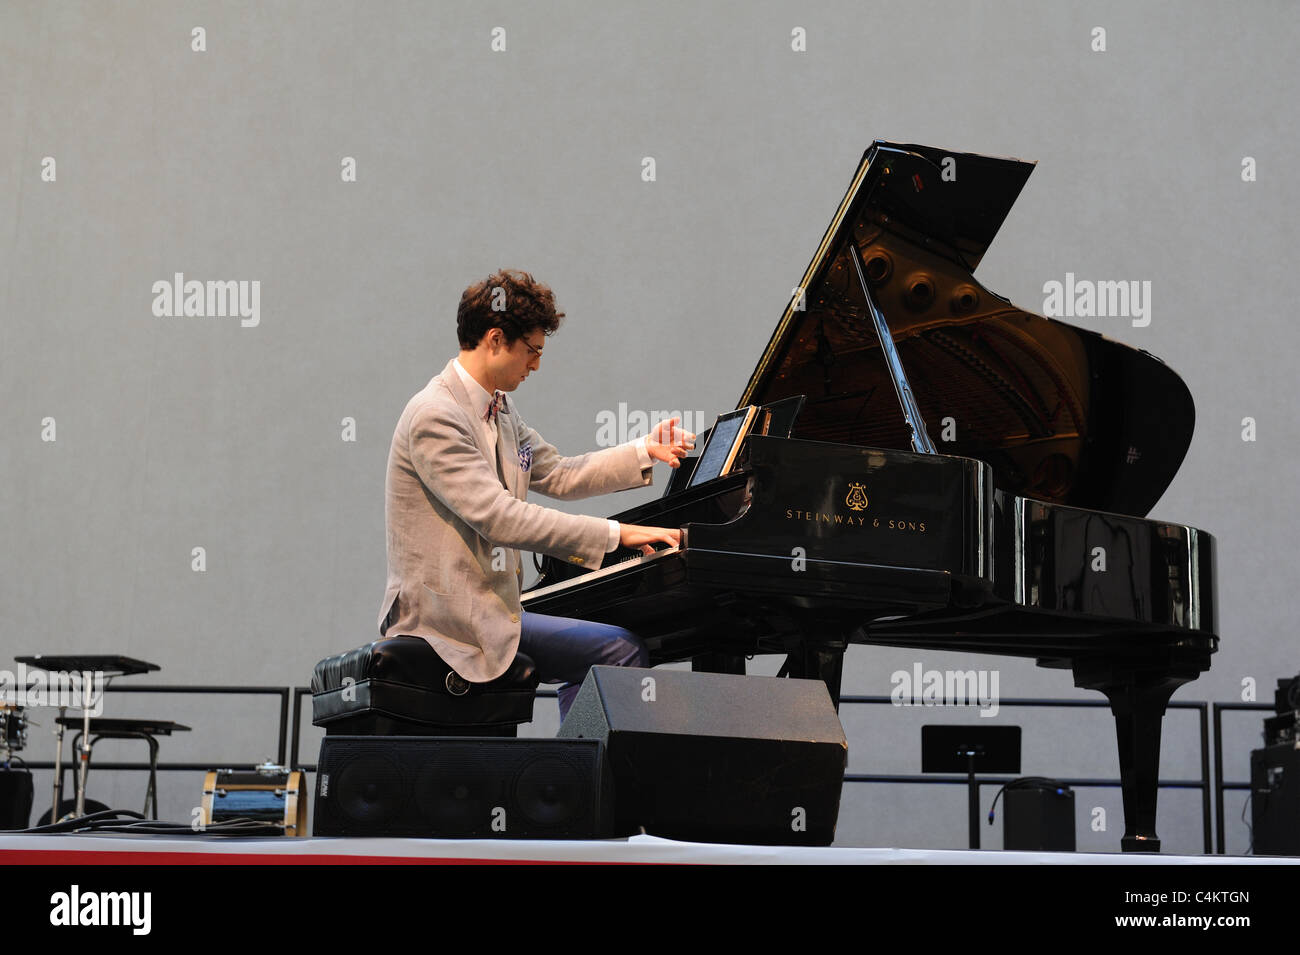 A pianist playing during the Bang on a Can festival of contemporary music at the Winter Garden in Battery Park City, - Stock Image